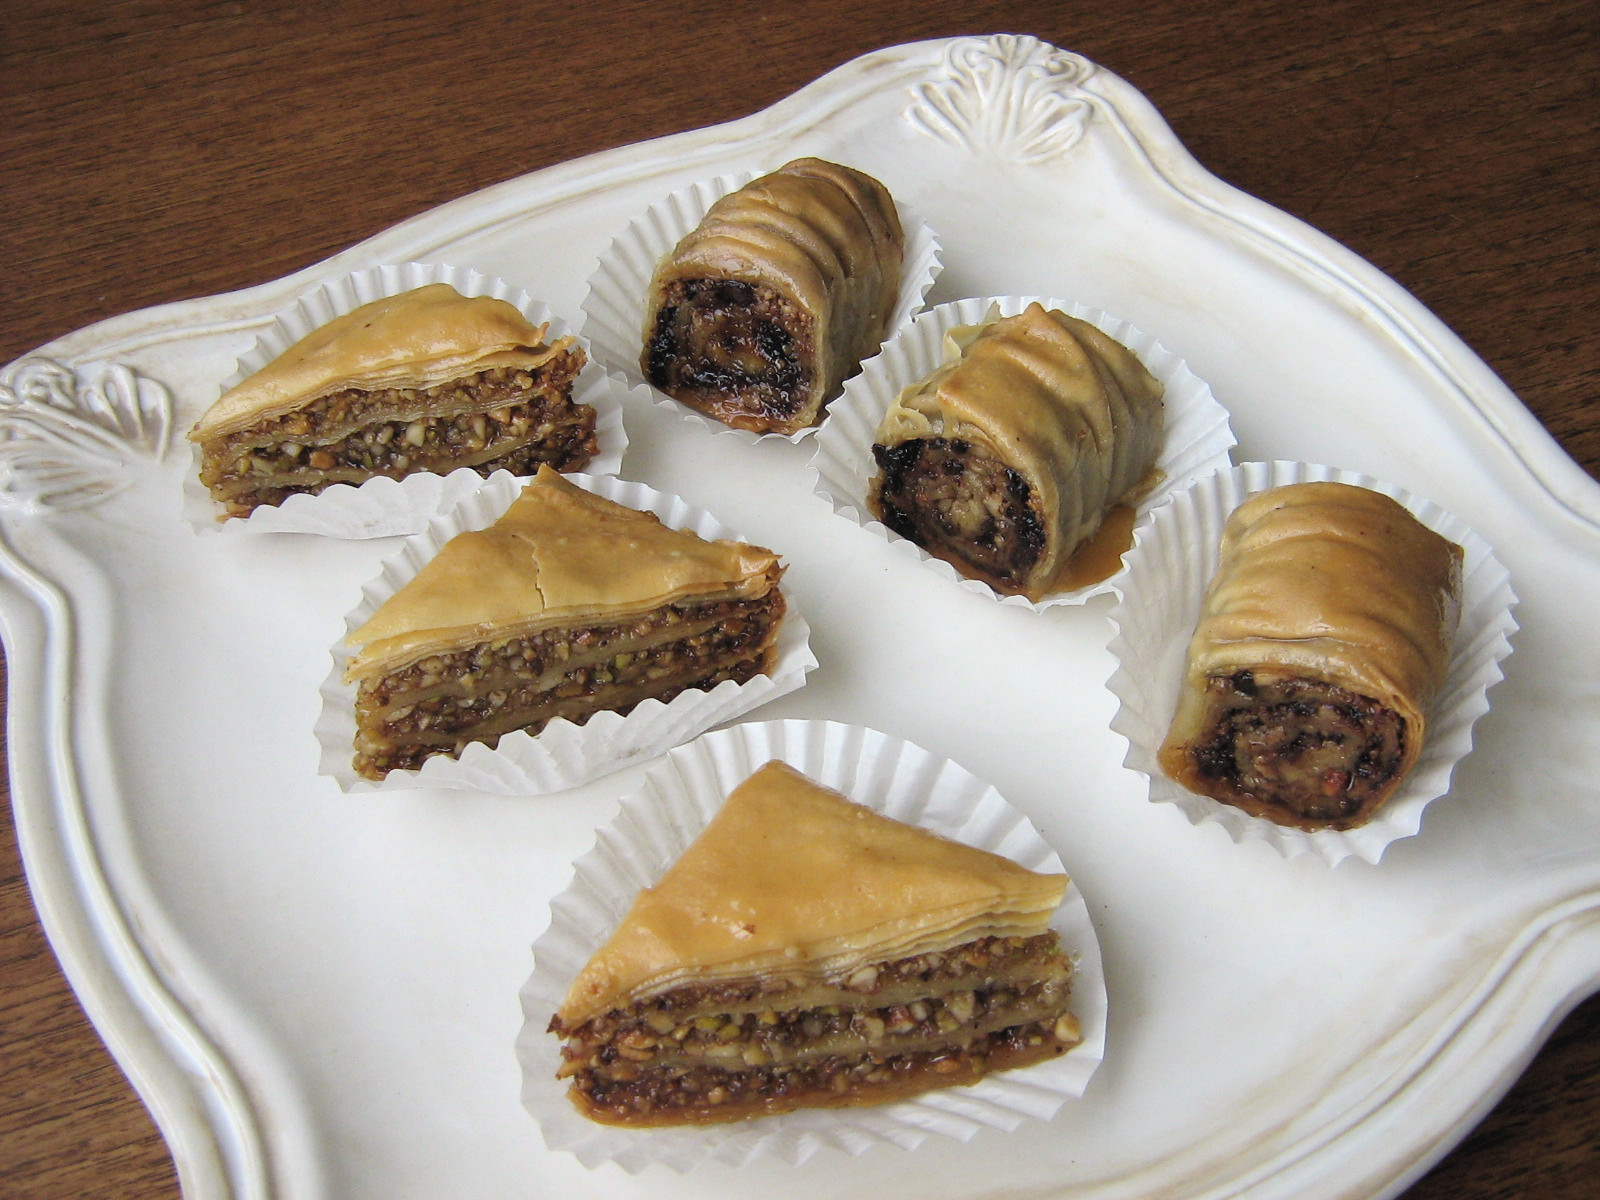 Phyllo Dough Dessert Recipes  Daring Bakers Baklava with Homemade Phyllo Pastry